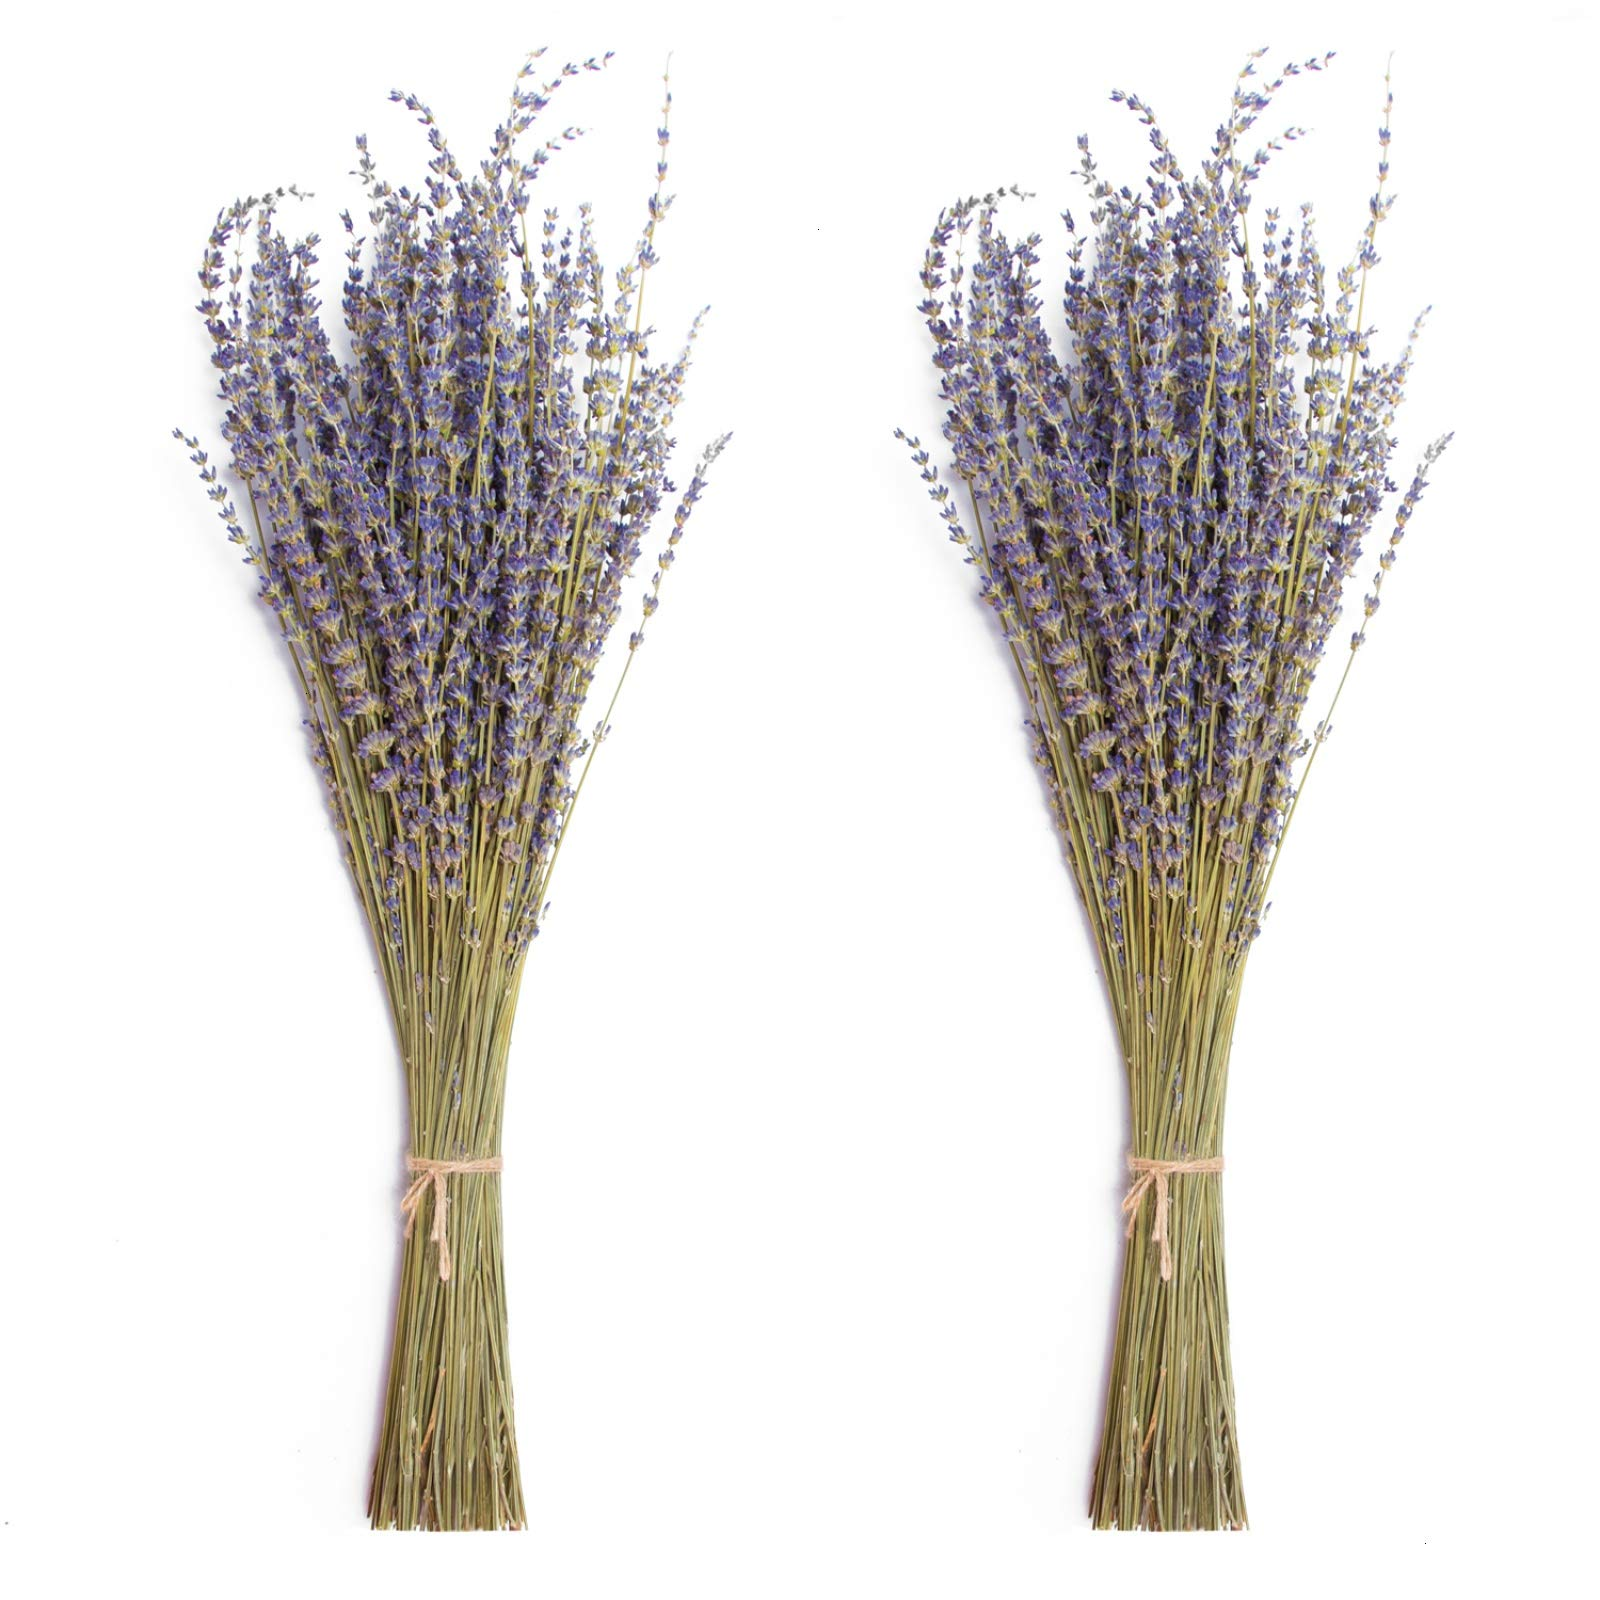 Timoo Dried Lavender Bundles 100% Natural DriedLavenderFlowers for Home Decoration, Photo Props, Home Fragrance, 2 Bundles Pack by Timoo (Image #1)